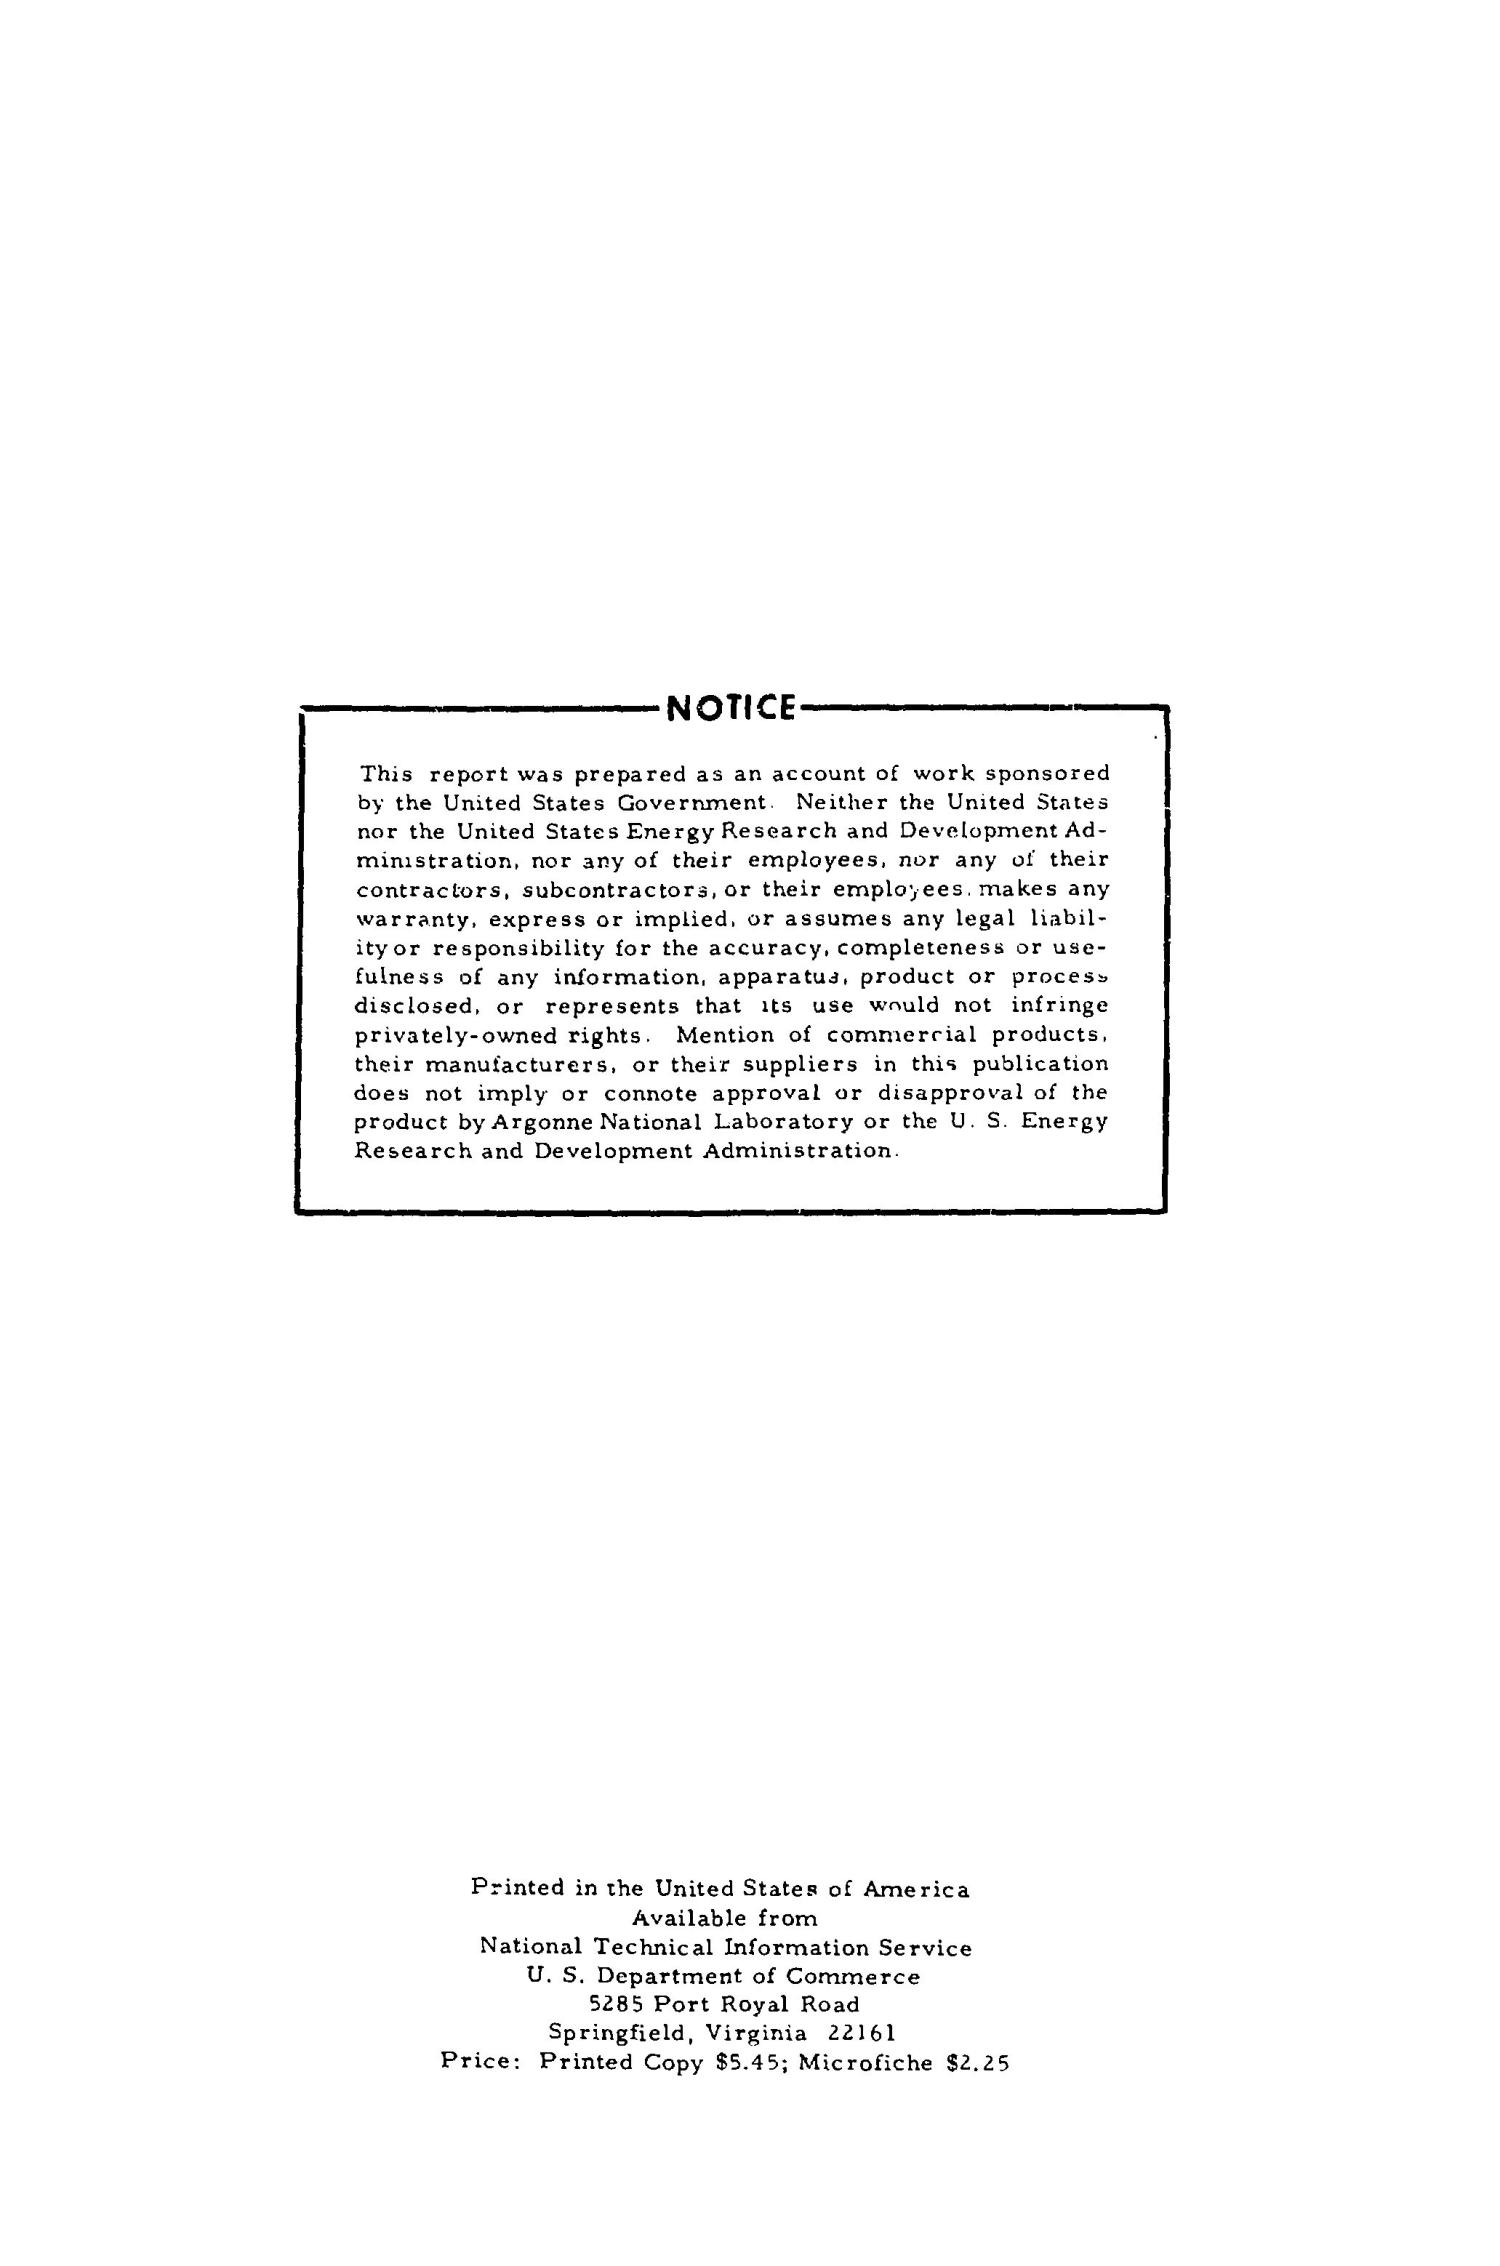 Engineering design study of a reference theta-pinch reactor (RTPR): environmental impact study                                                                                                      [Sequence #]: 2 of 80